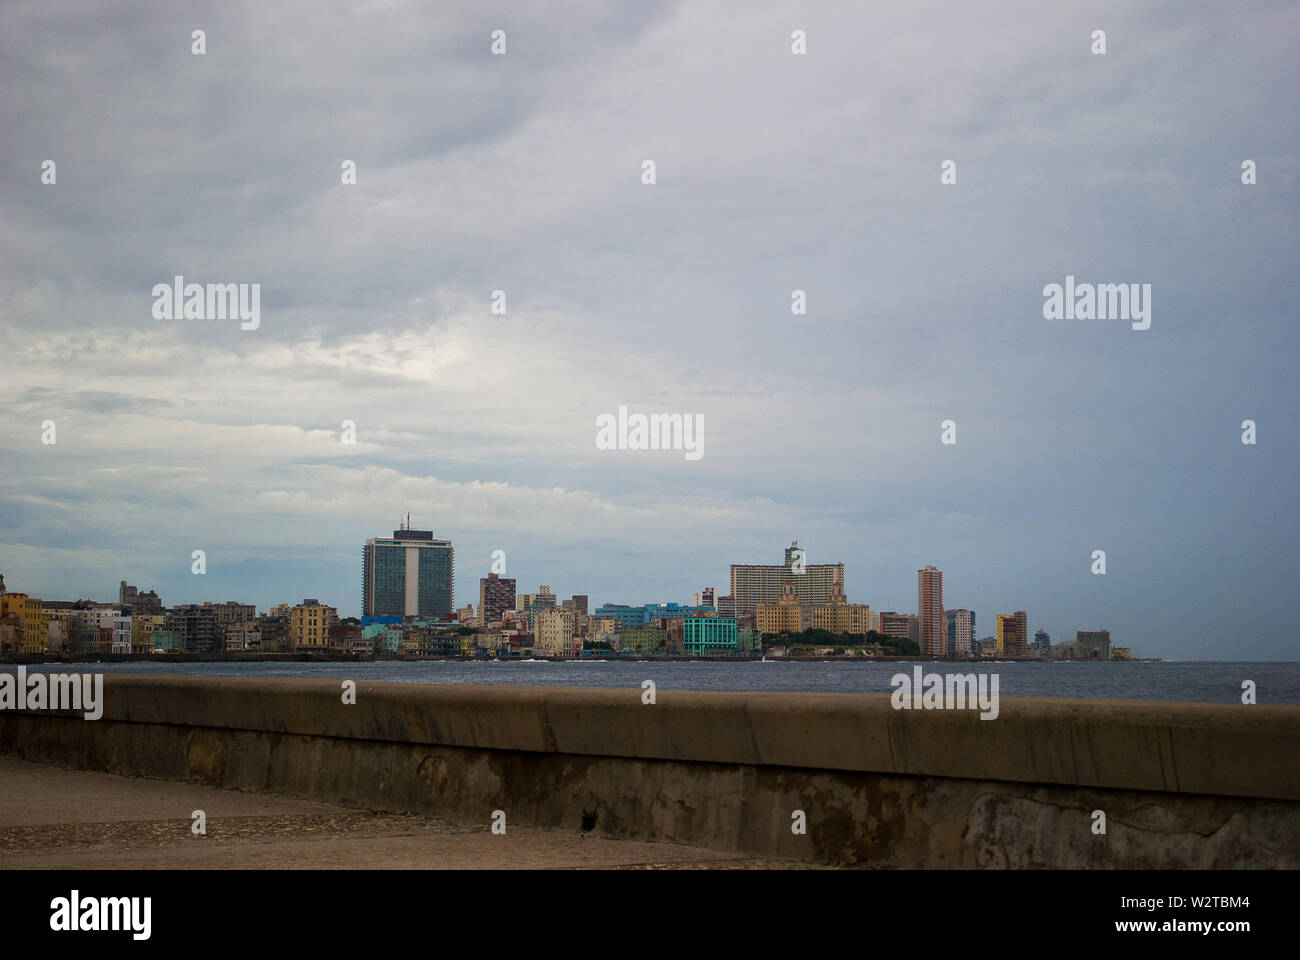 Havana - Cuba / October 16 2011, Panoramic view of Havana in the distance with colorful buildings on the coastline, at 50 year anniversary of Castro's - Stock Image